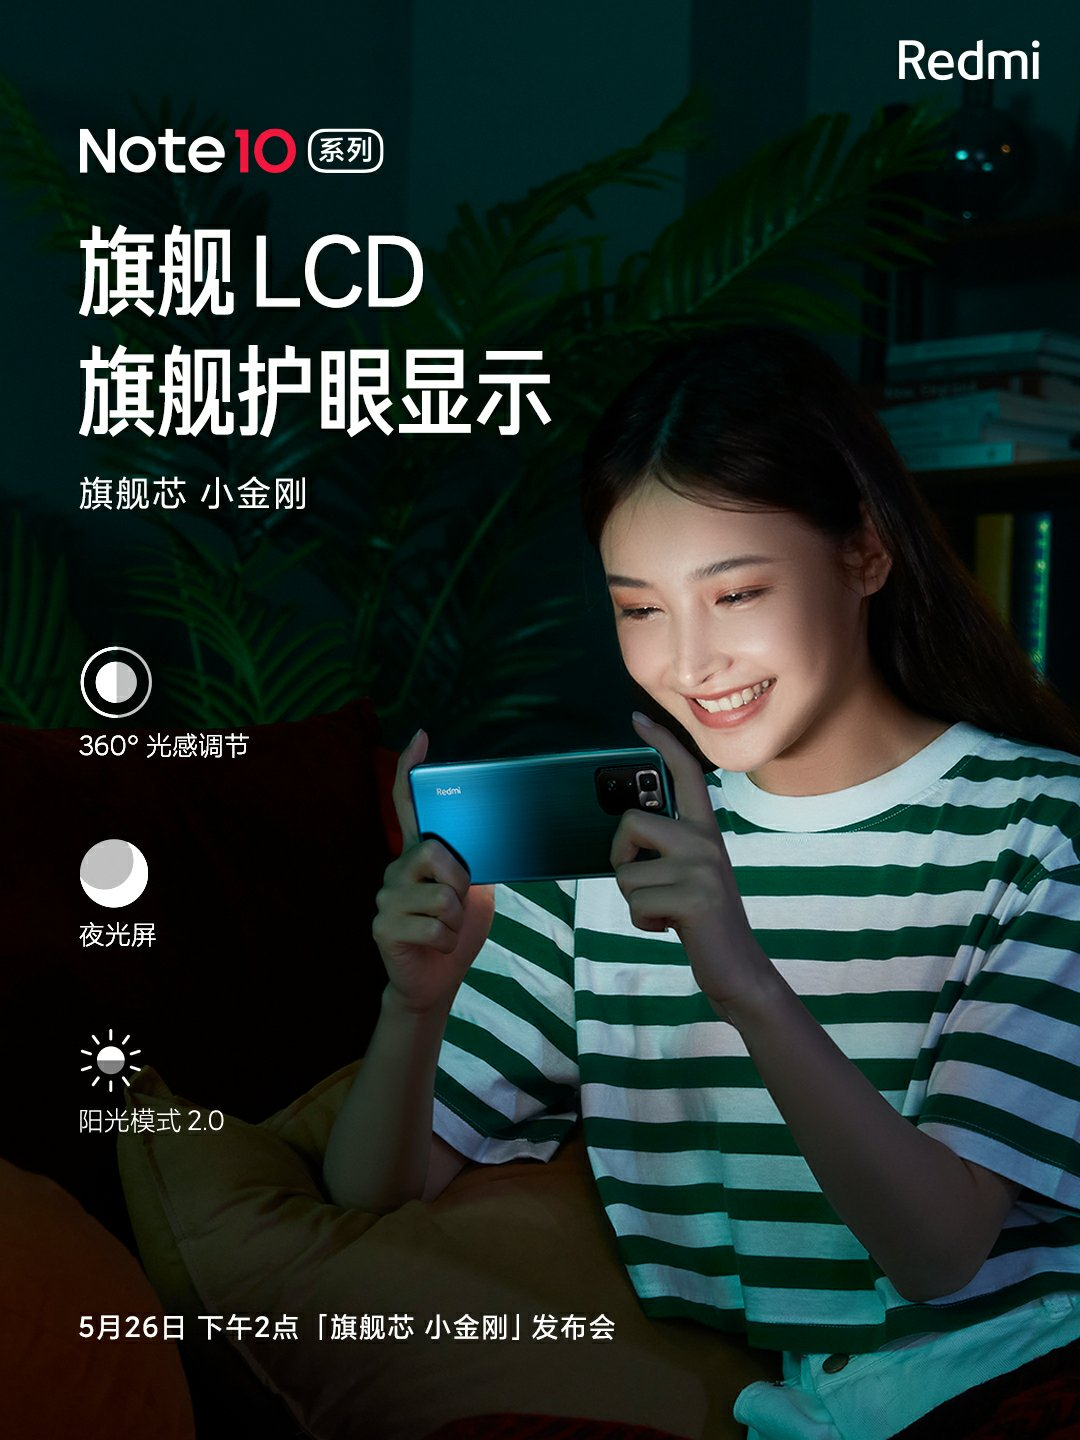 Redmi Note10 Series Display Features eye protection